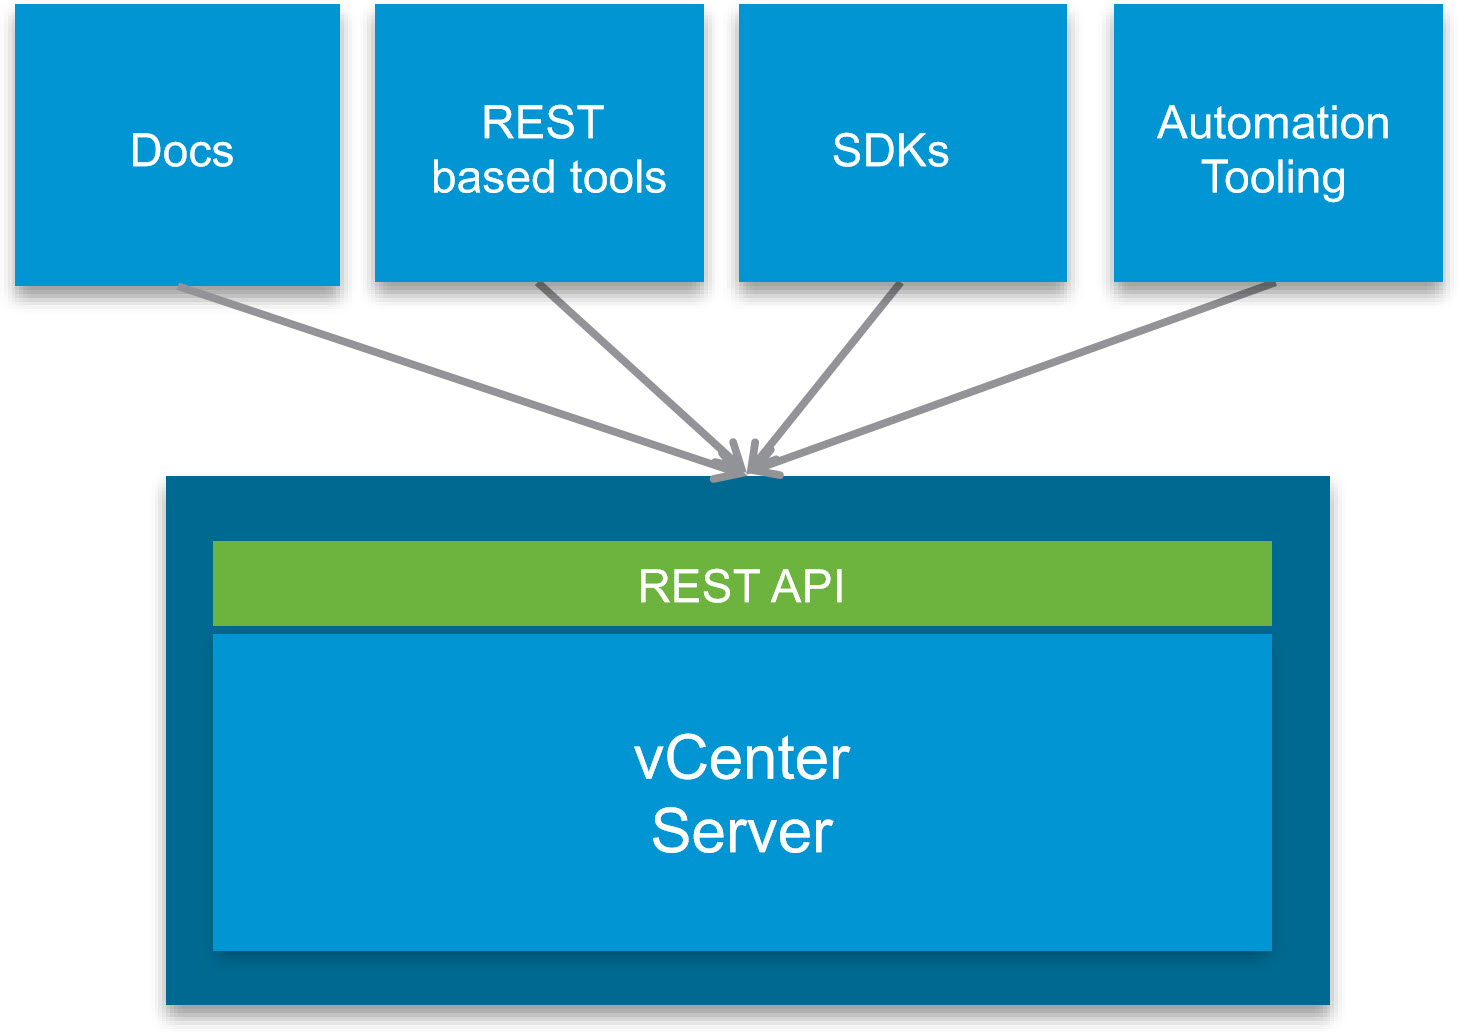 VMware Gets Serious about RESTful APIs and Expanding